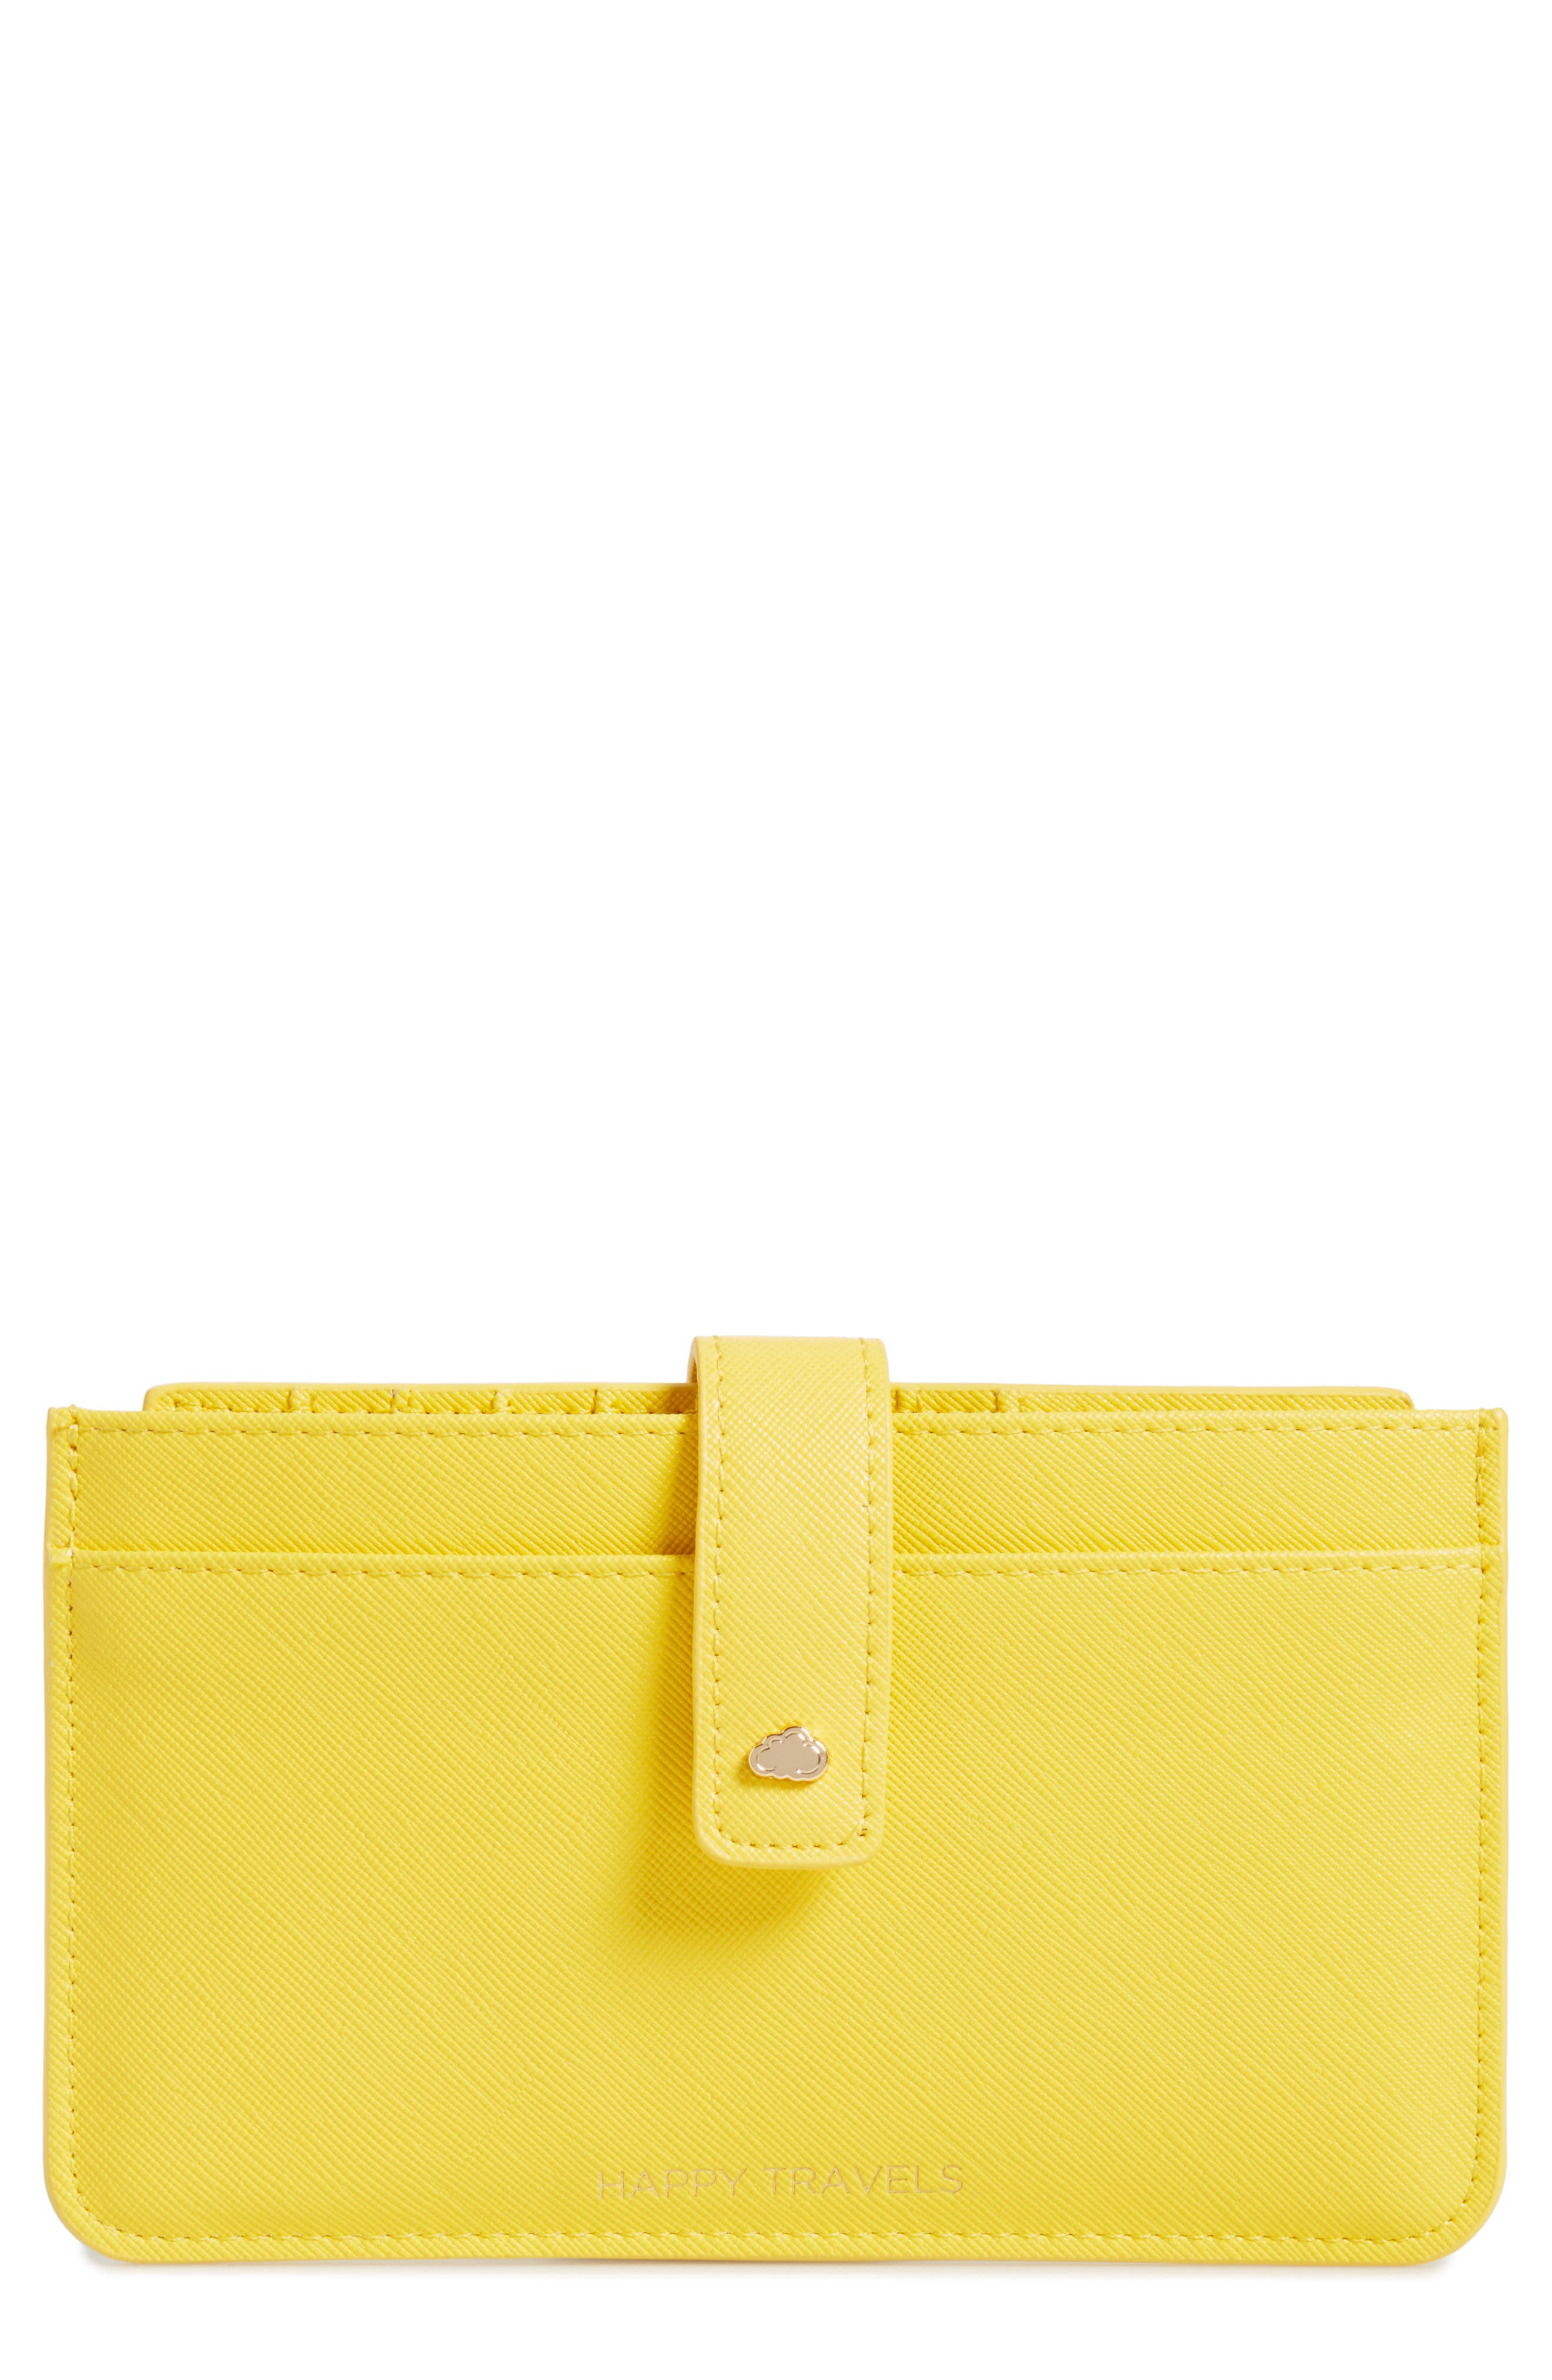 Happy Travels Faux Leather Document Wallet,                         Main,                         color, 700